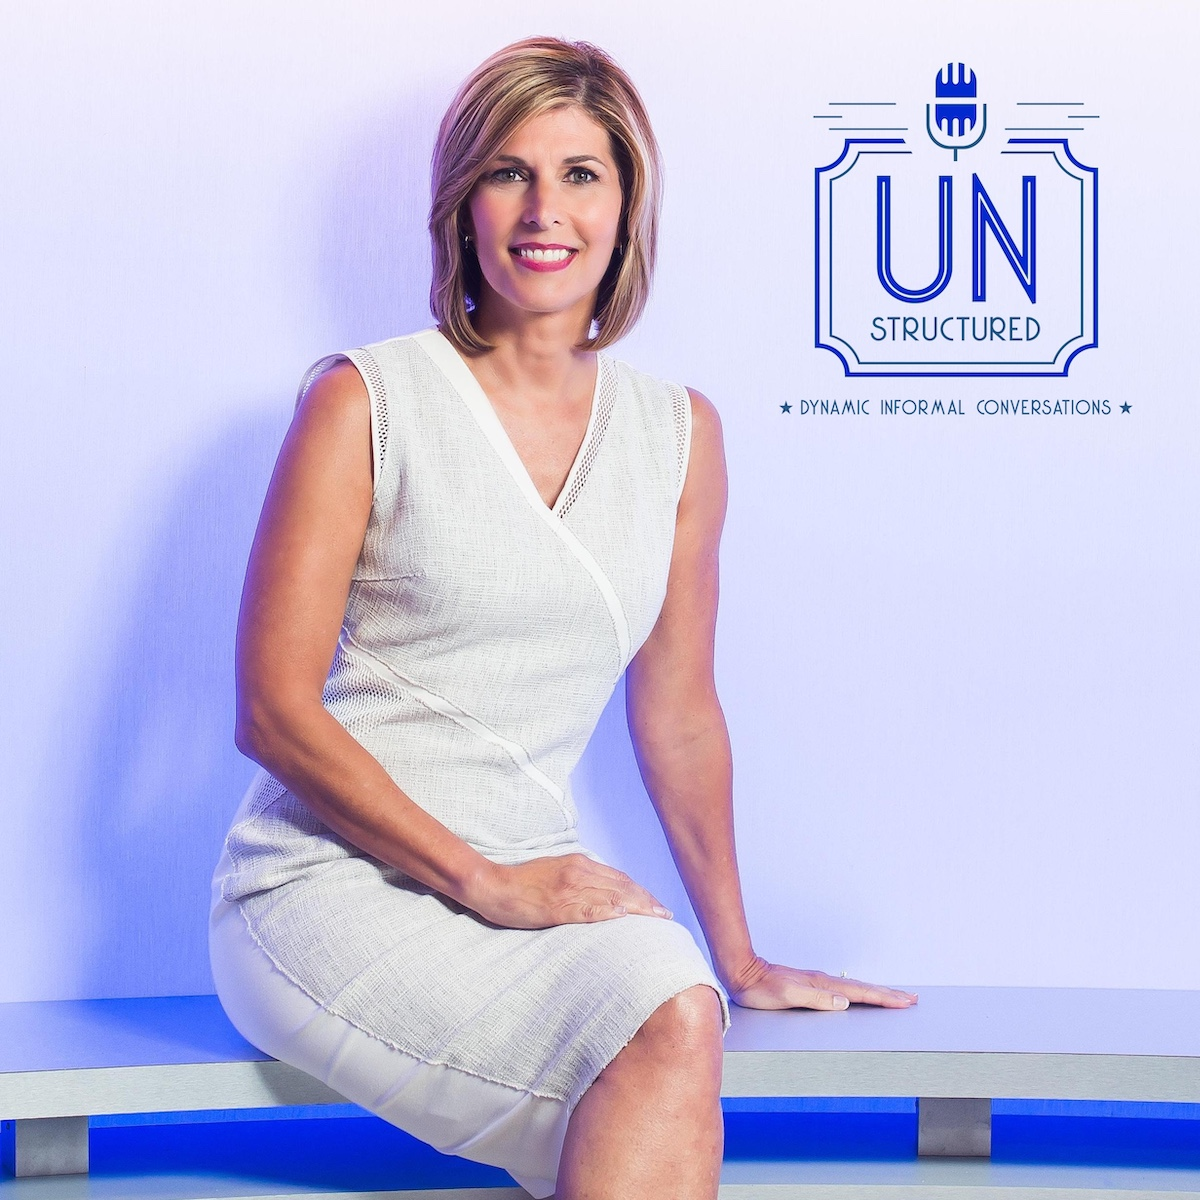 117 - Sharyl Attkisson UnstructuredPod Unstructured interviews - Dynamic Informal Conversations with unique wide-ranging and well-researched interviews hosted by Eric Hunley